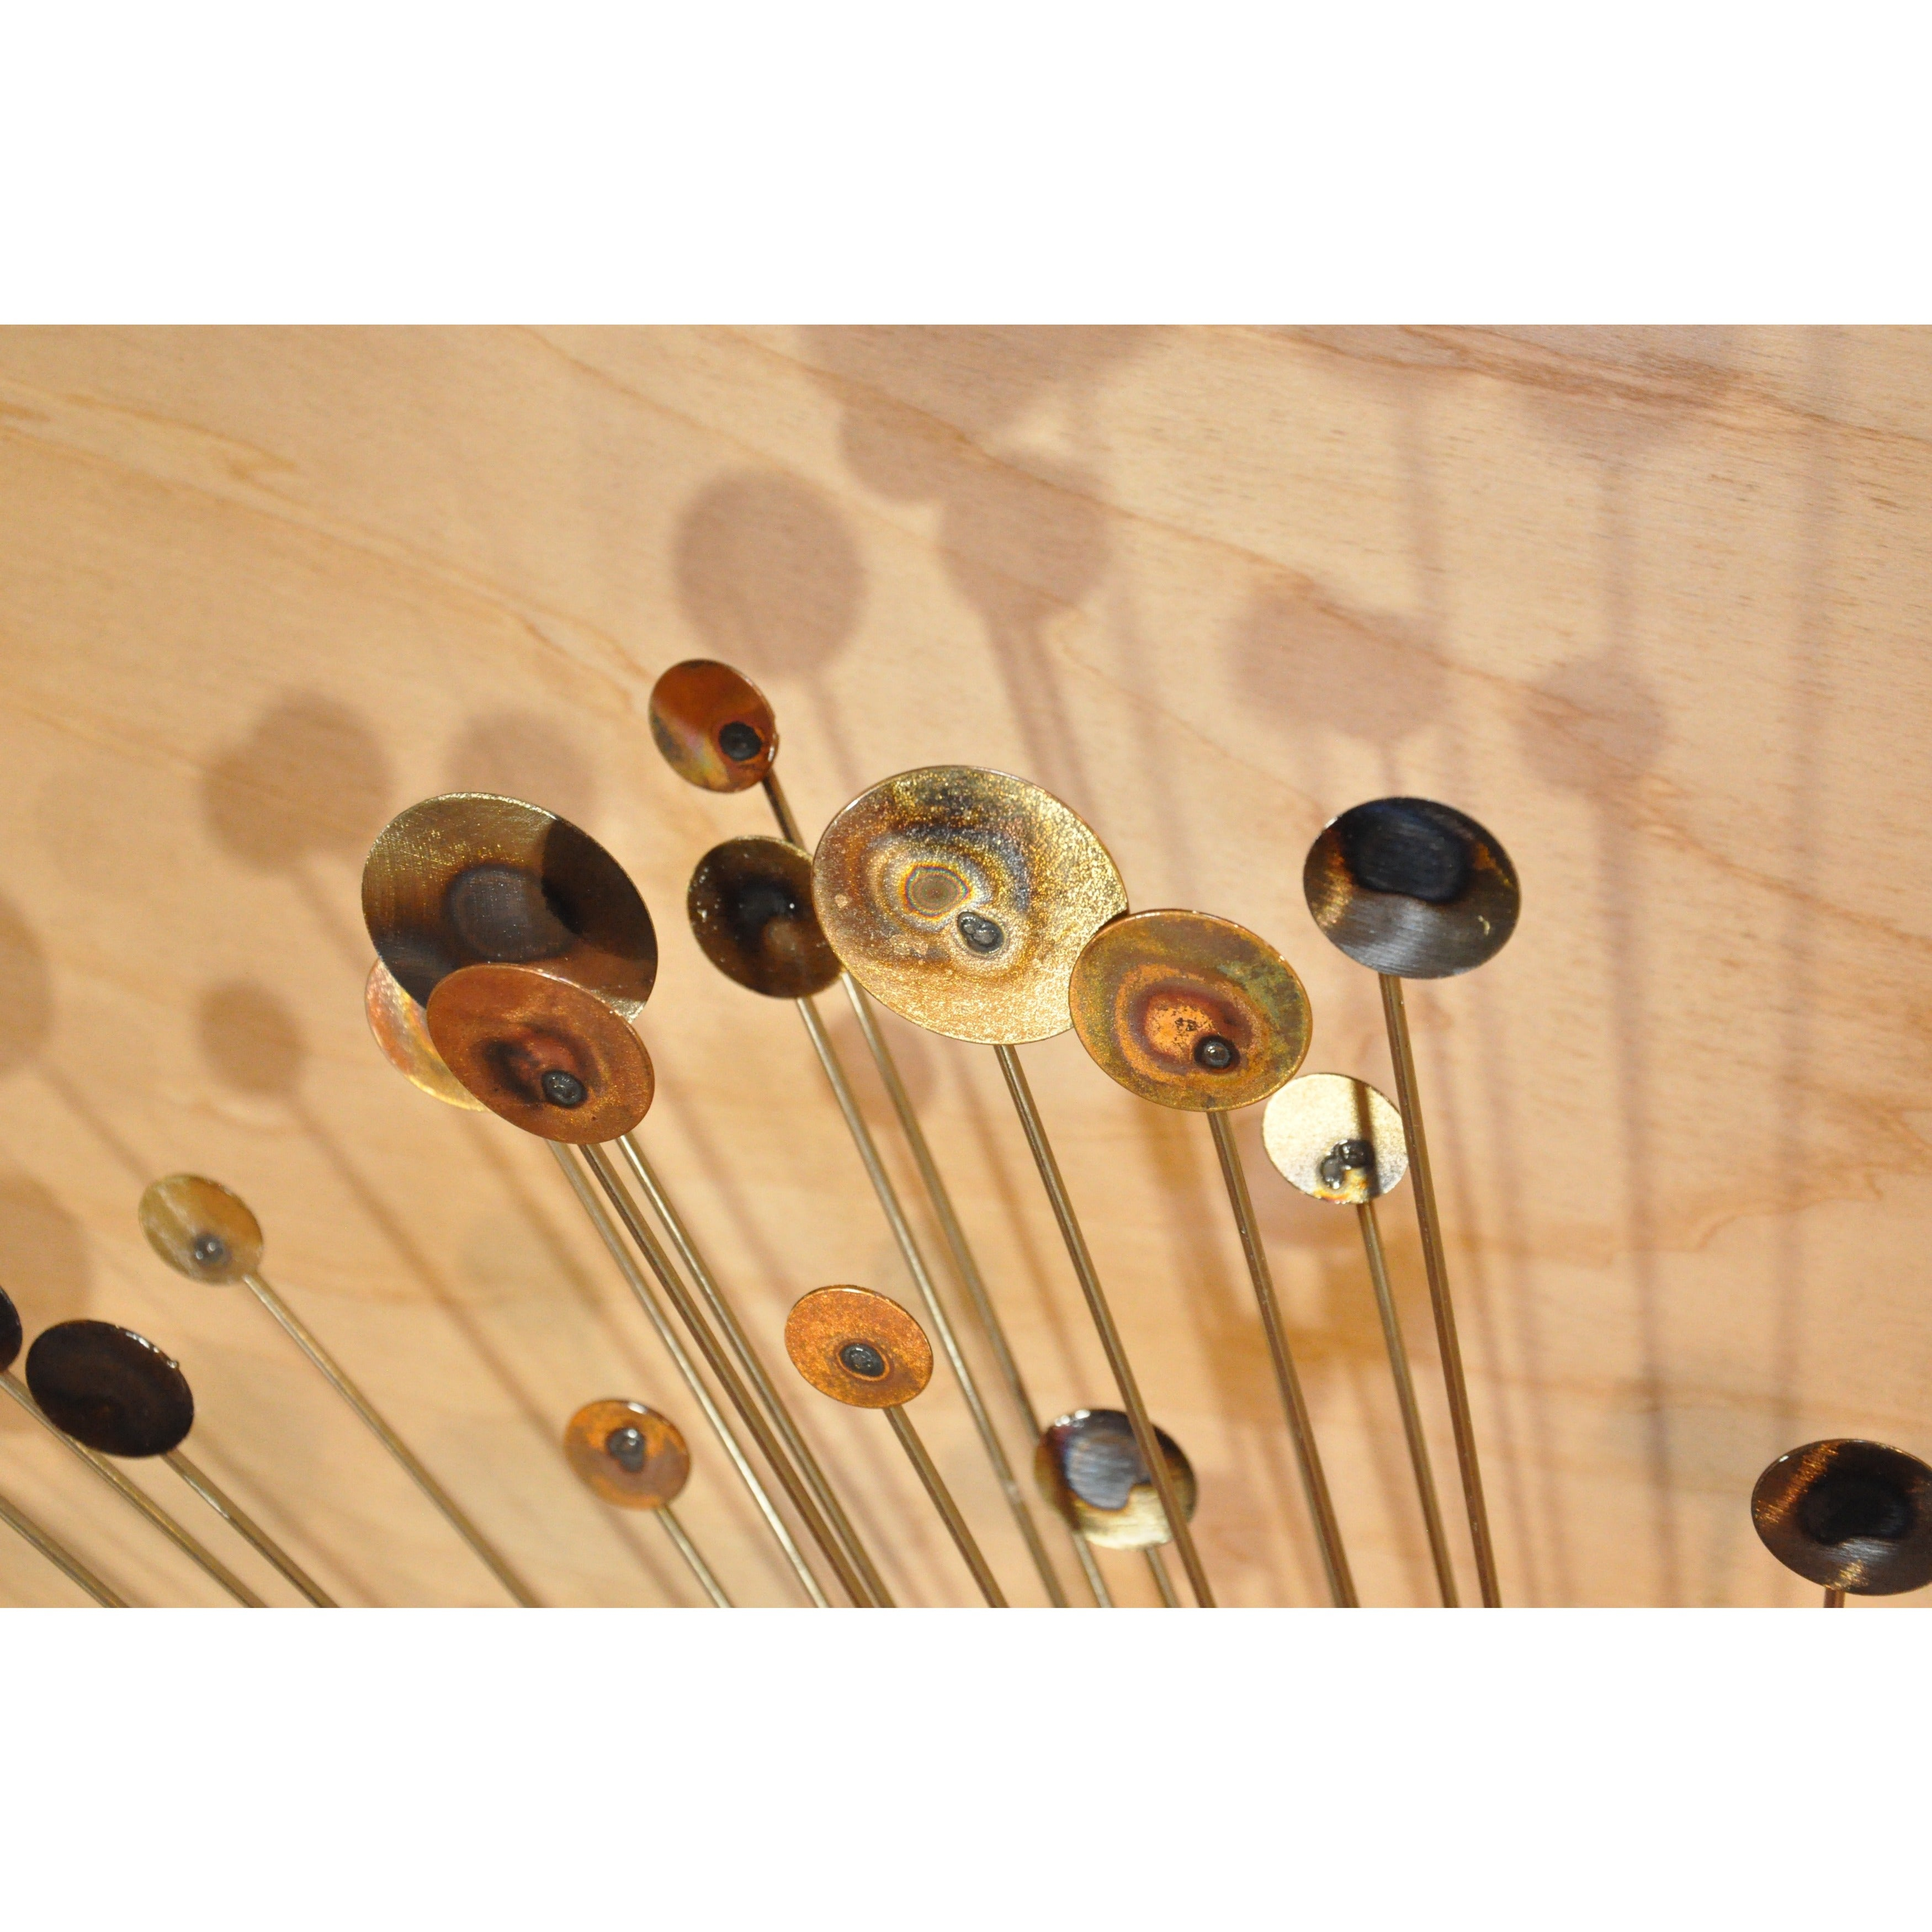 Dazzle Metal Wall Art by Metal Perspectives - Free Shipping Today ...